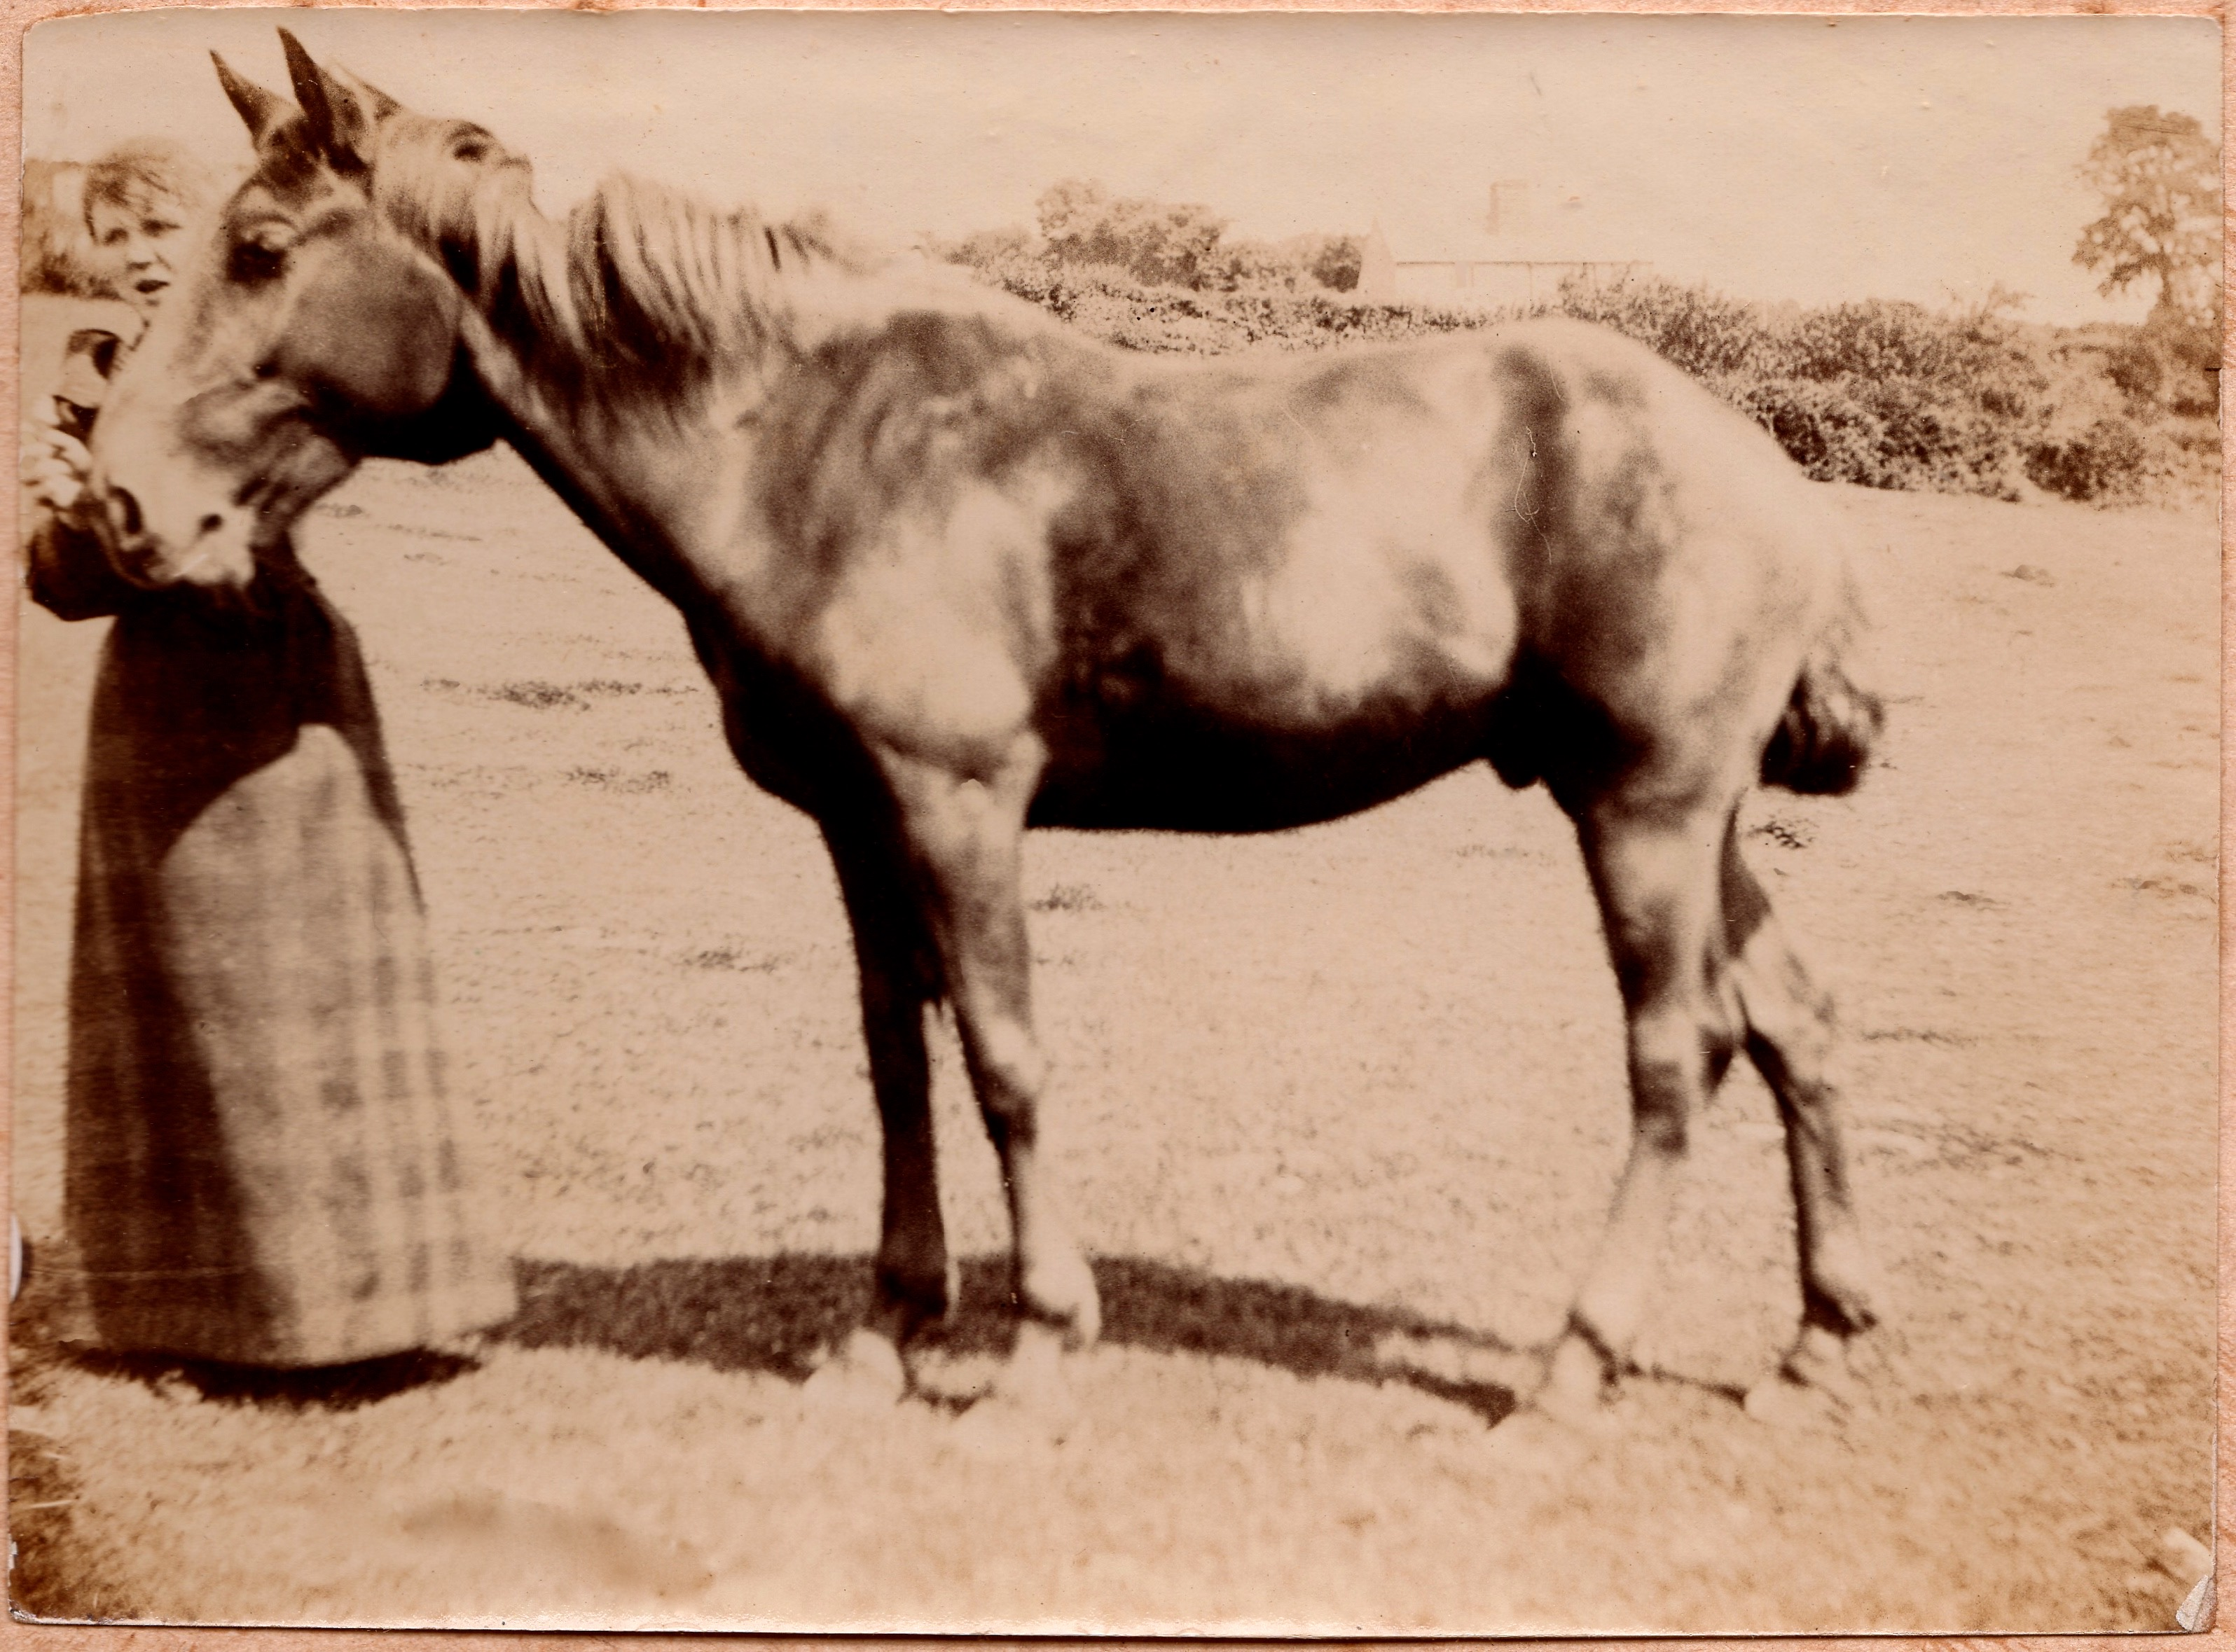 Delamore18 Lady with Horse